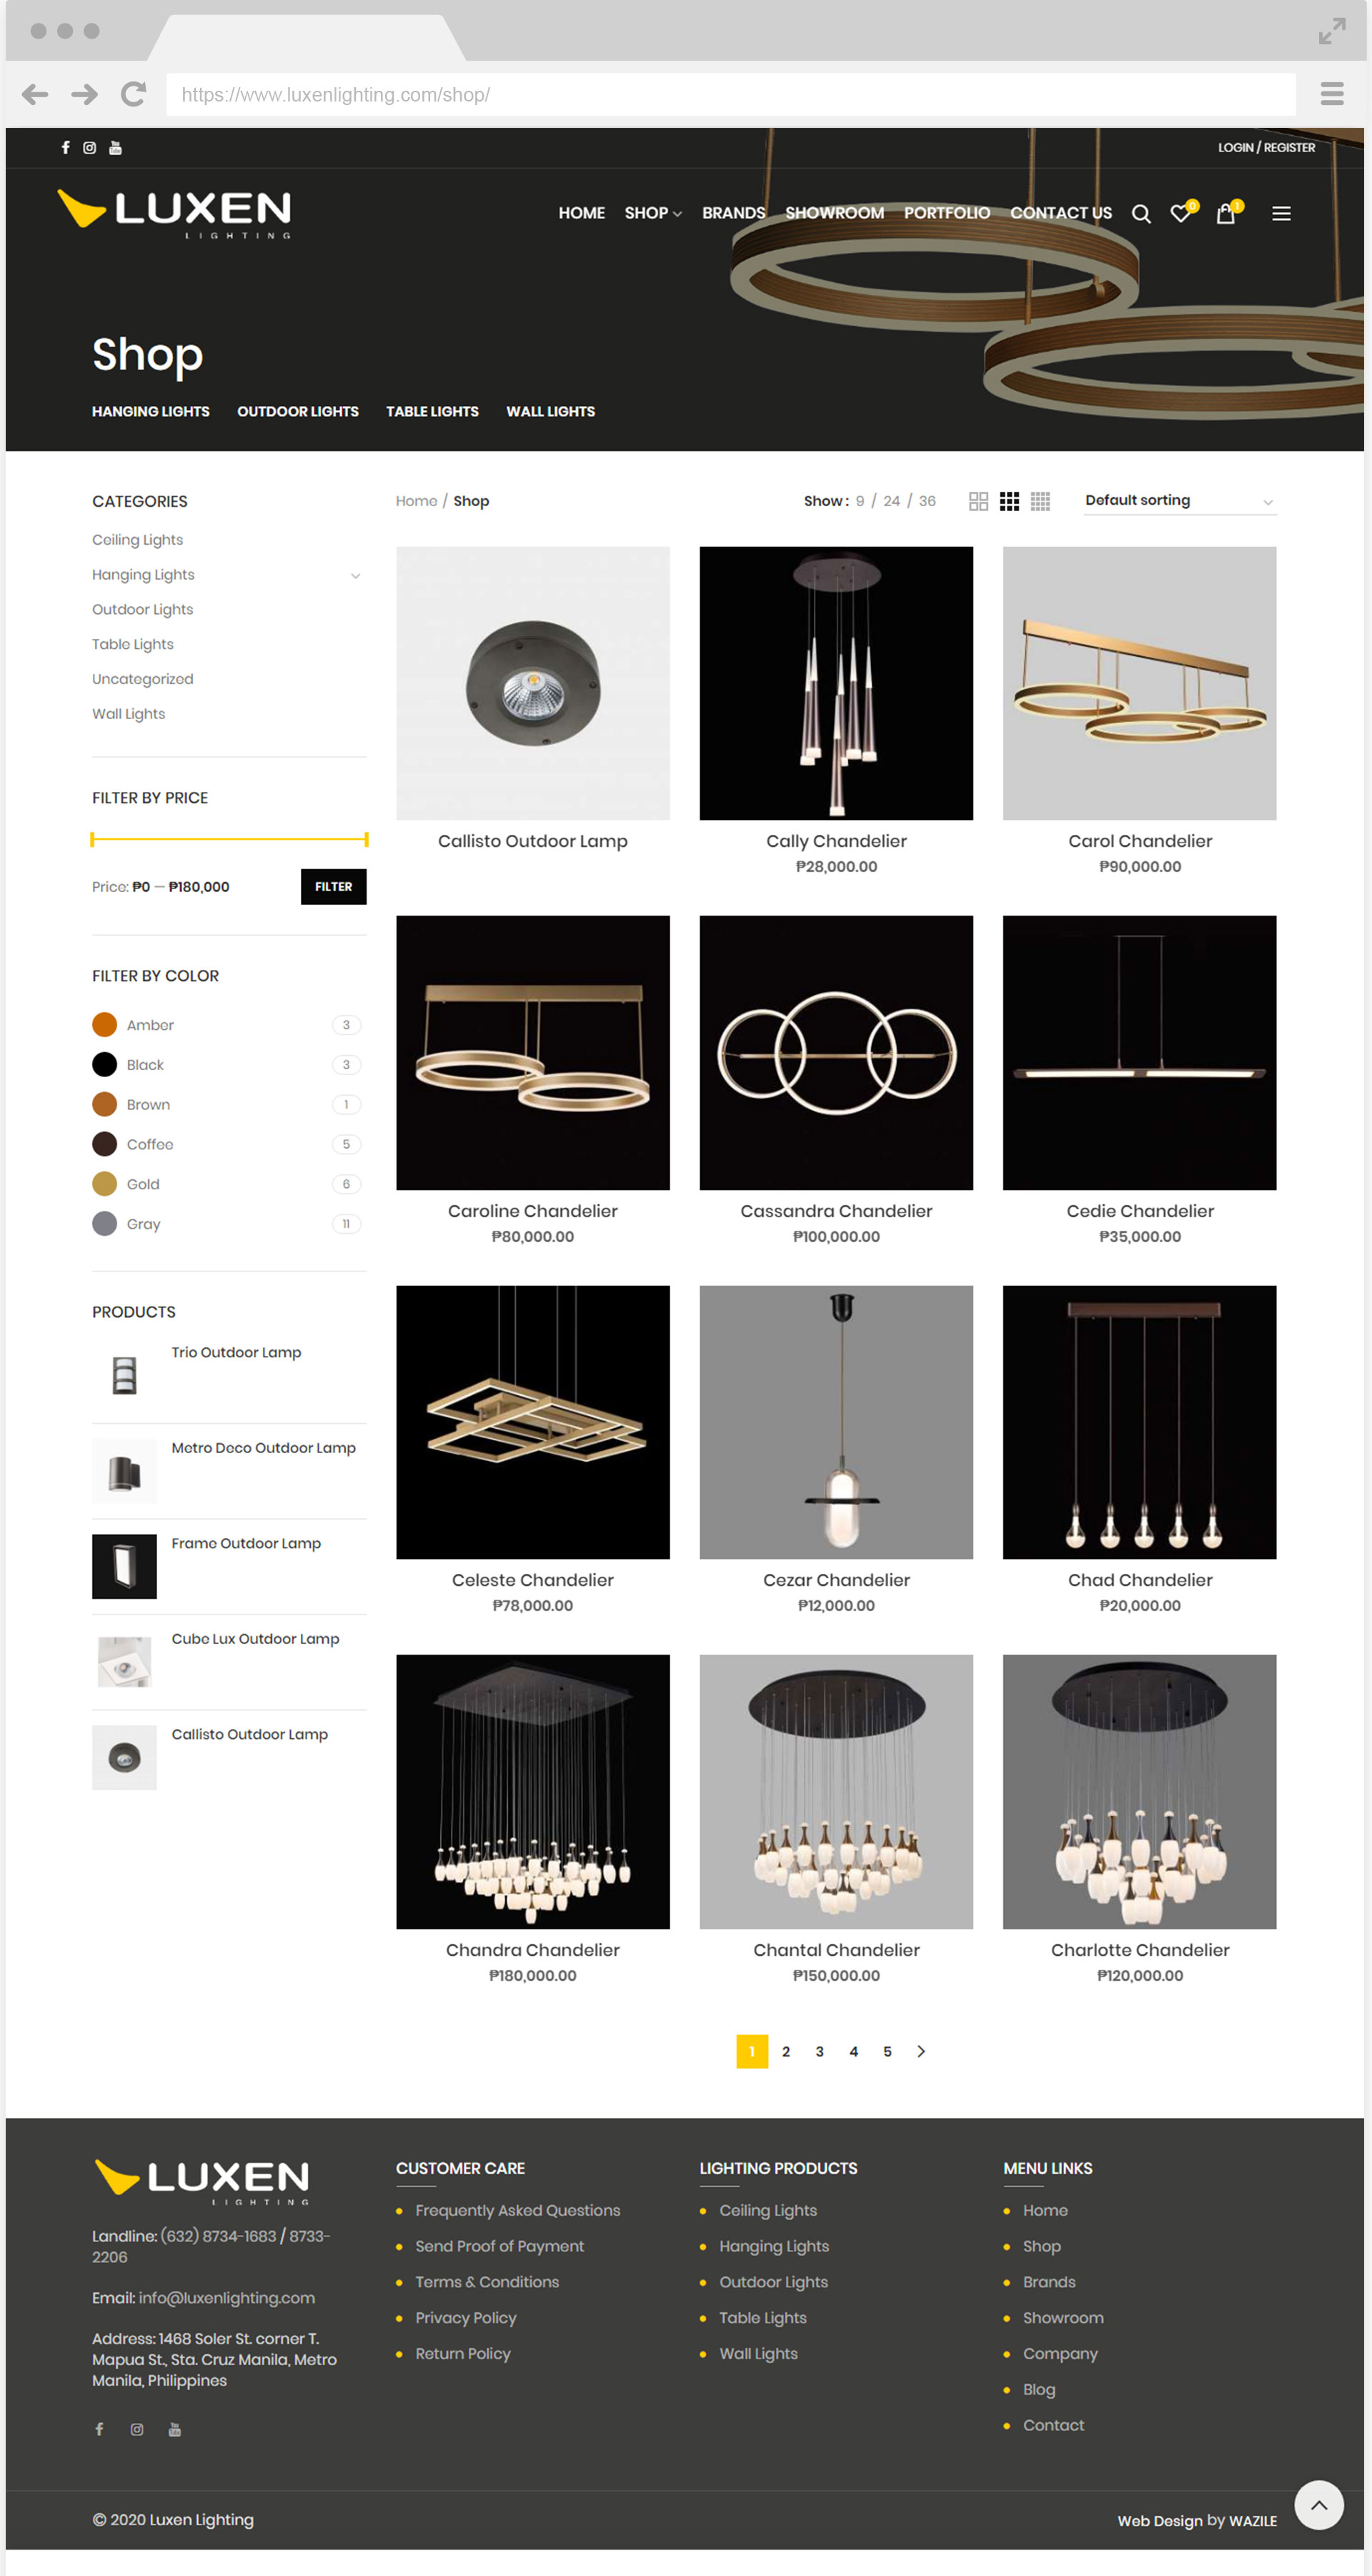 Luxen Lighting Shop